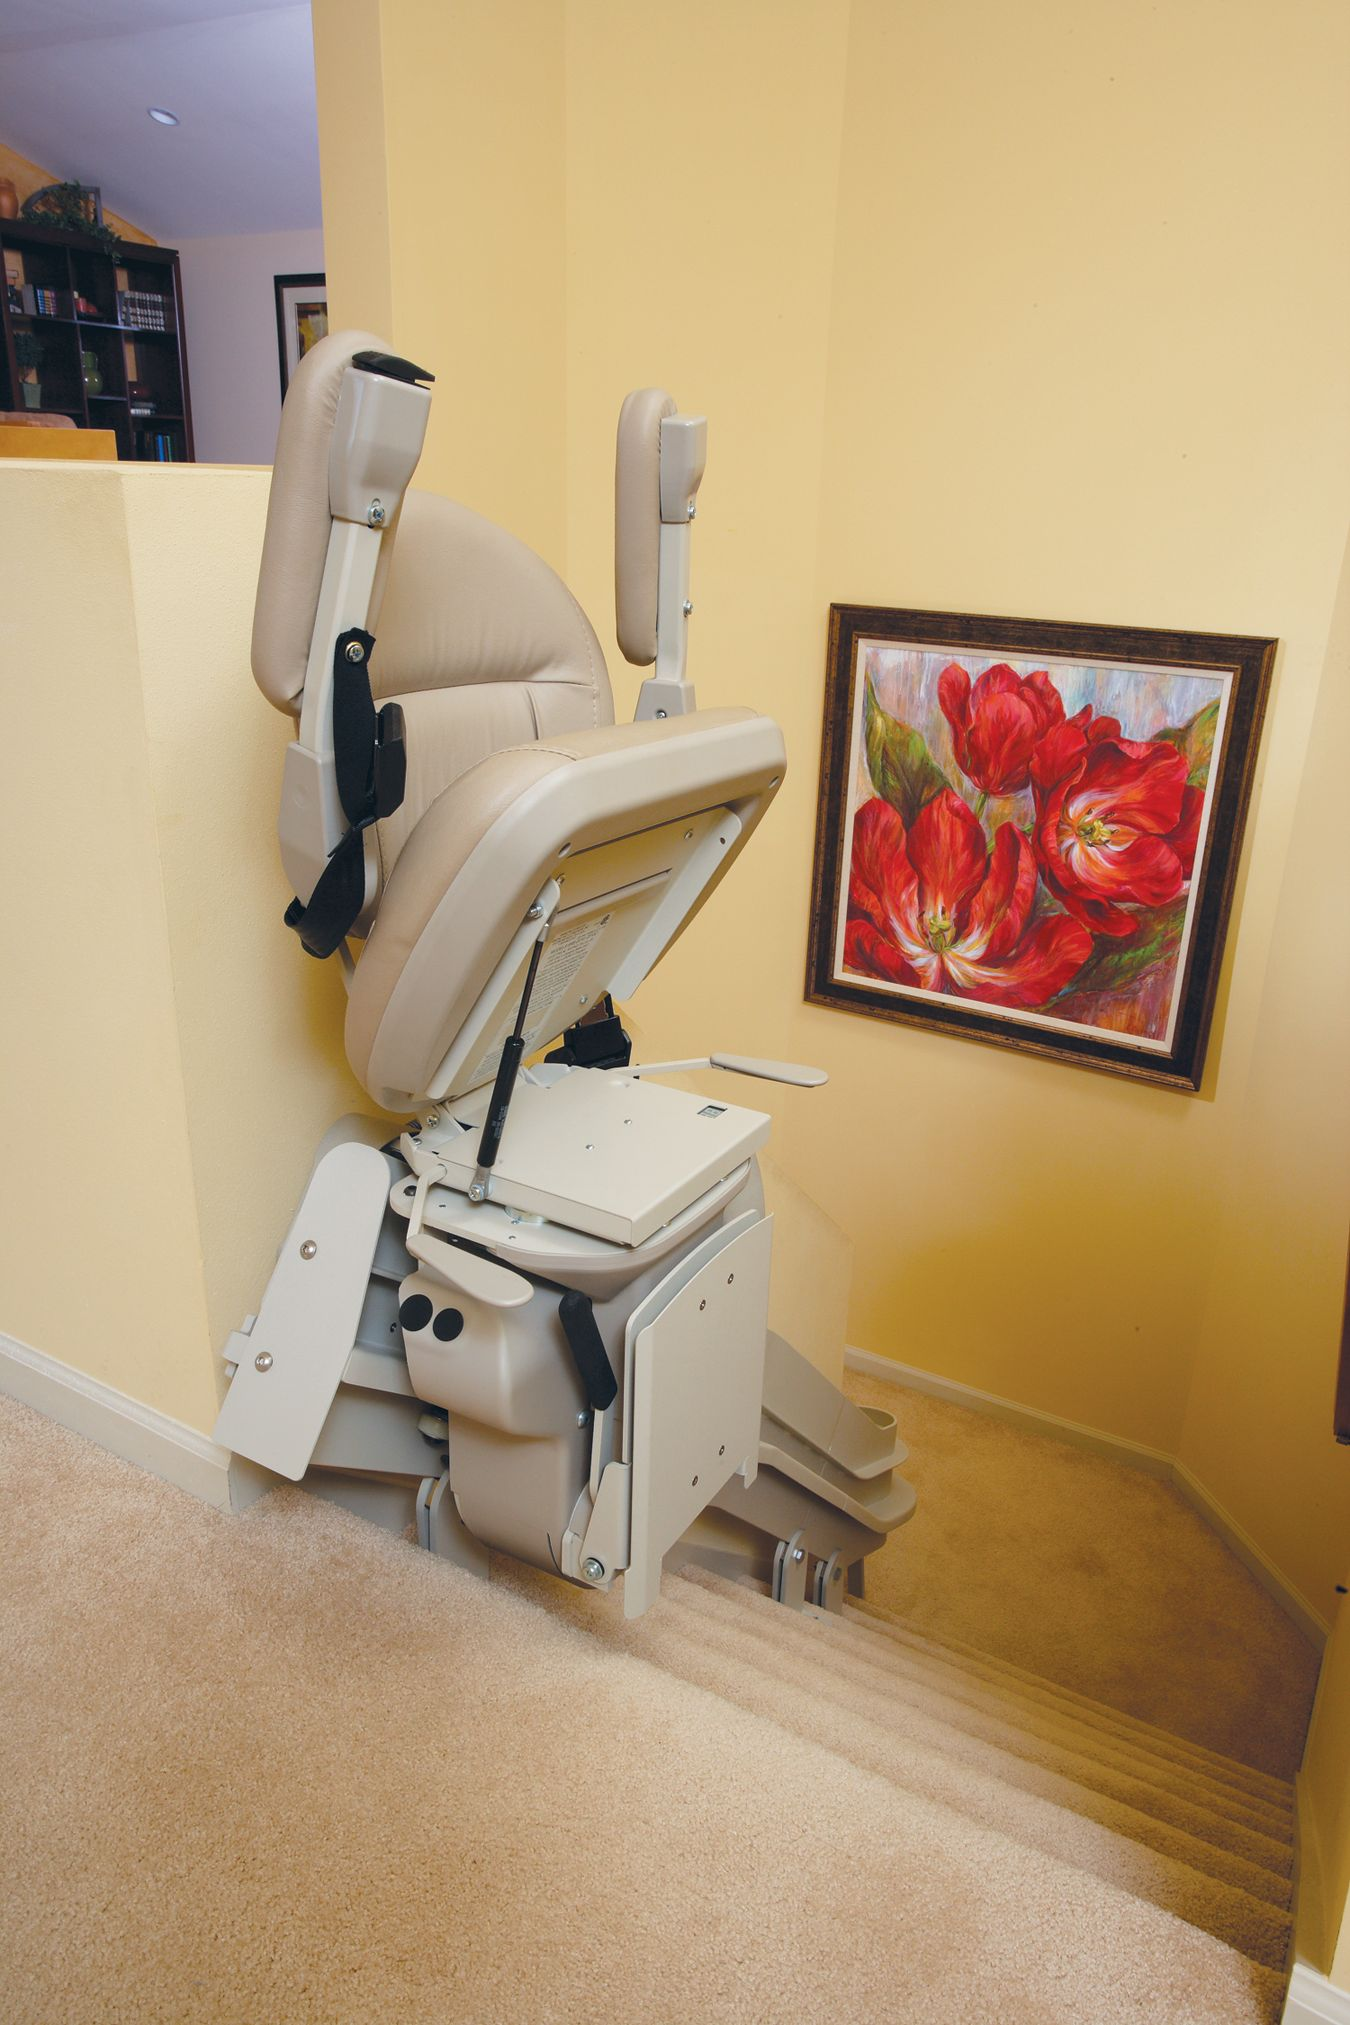 bruno chair lifts salon hydraulic philippines power folding stairlift seat